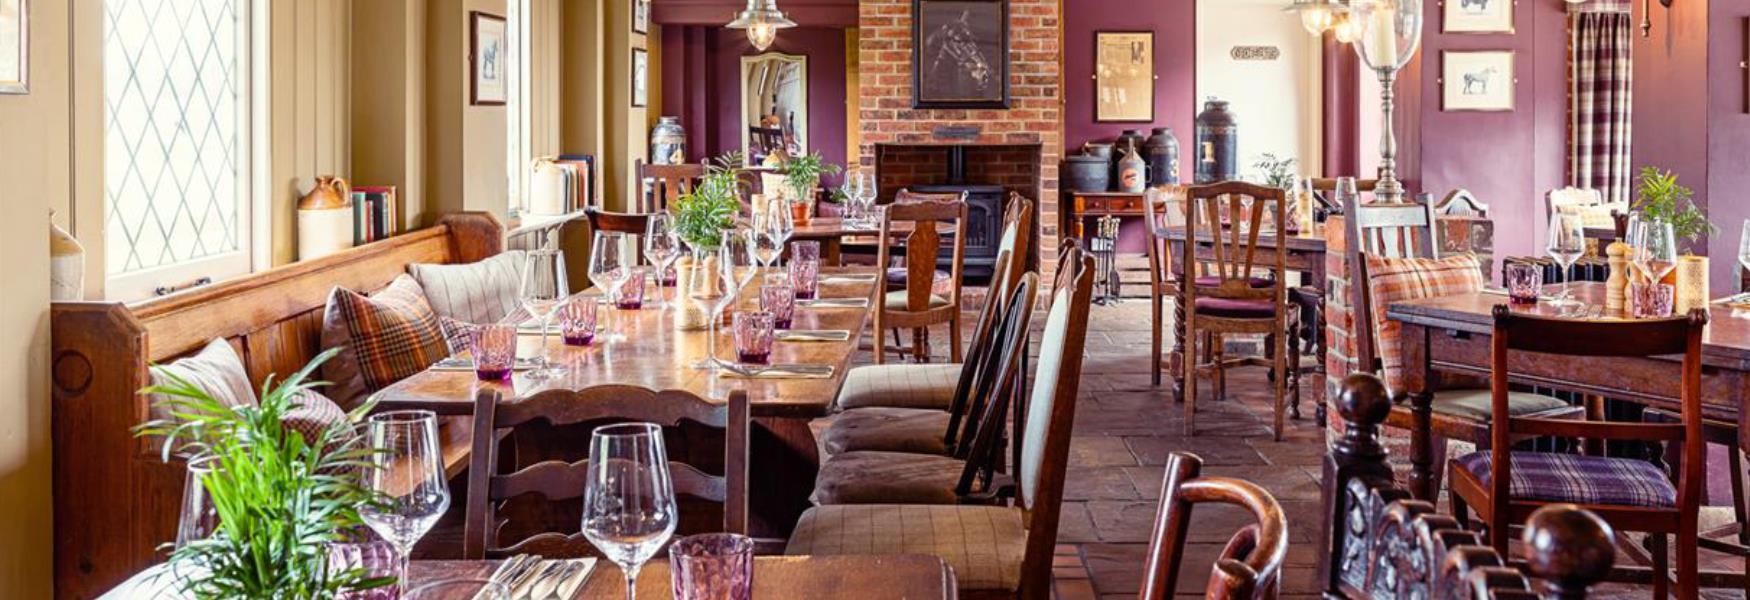 Best New Forest Pubs | Gastro Pubs & Bars - The New Forest